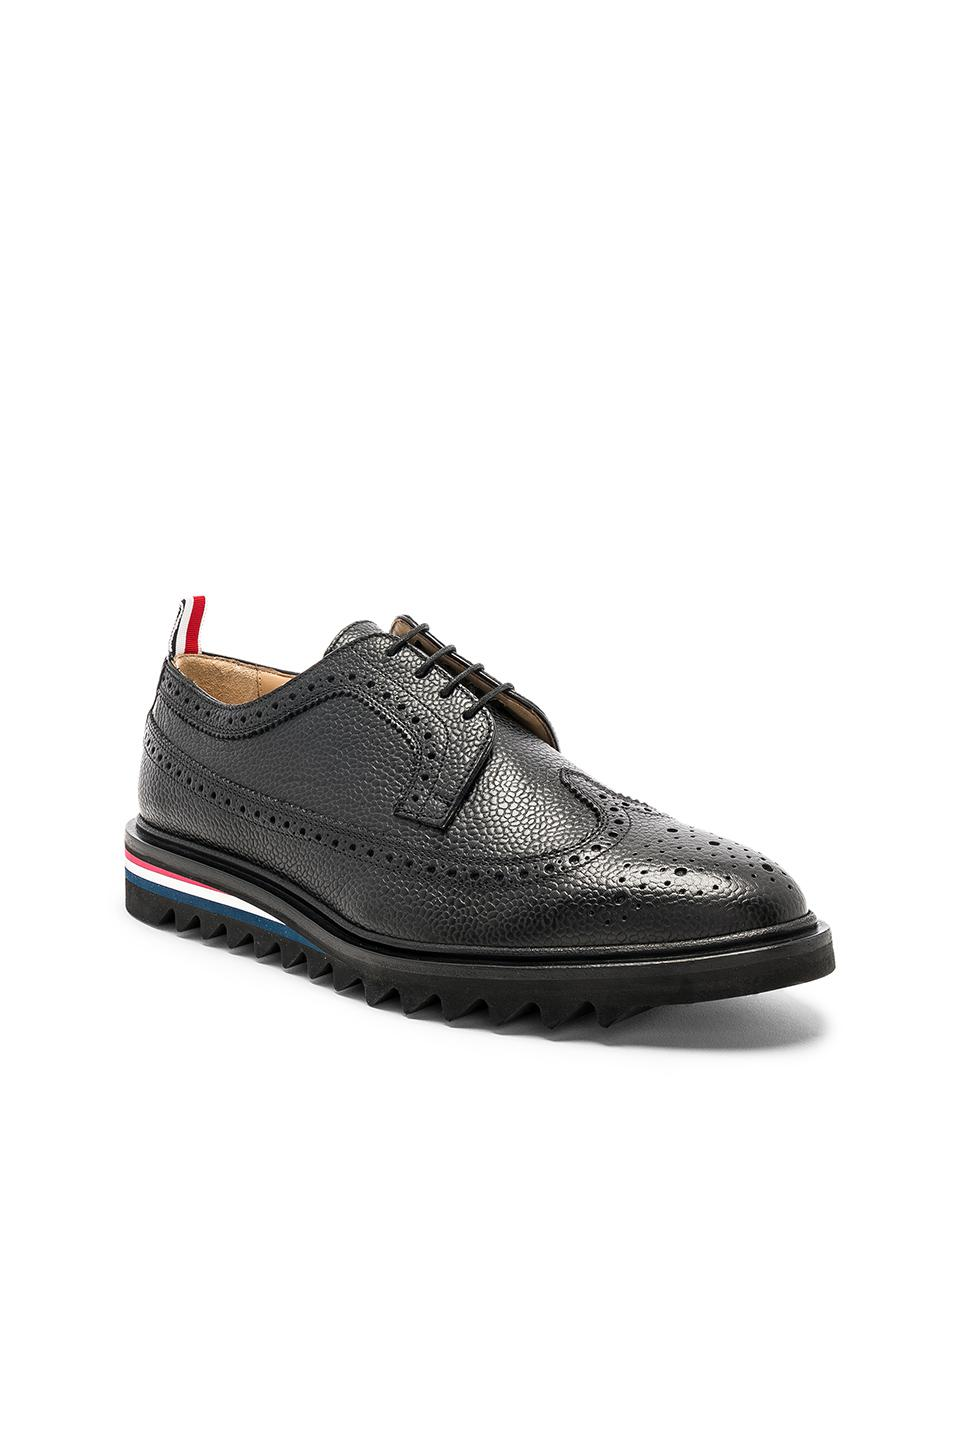 Thom Browne Pebble Grain Classic Longwing Brogue with Threaded Rubber Sole in . 2VGGFbJaWn